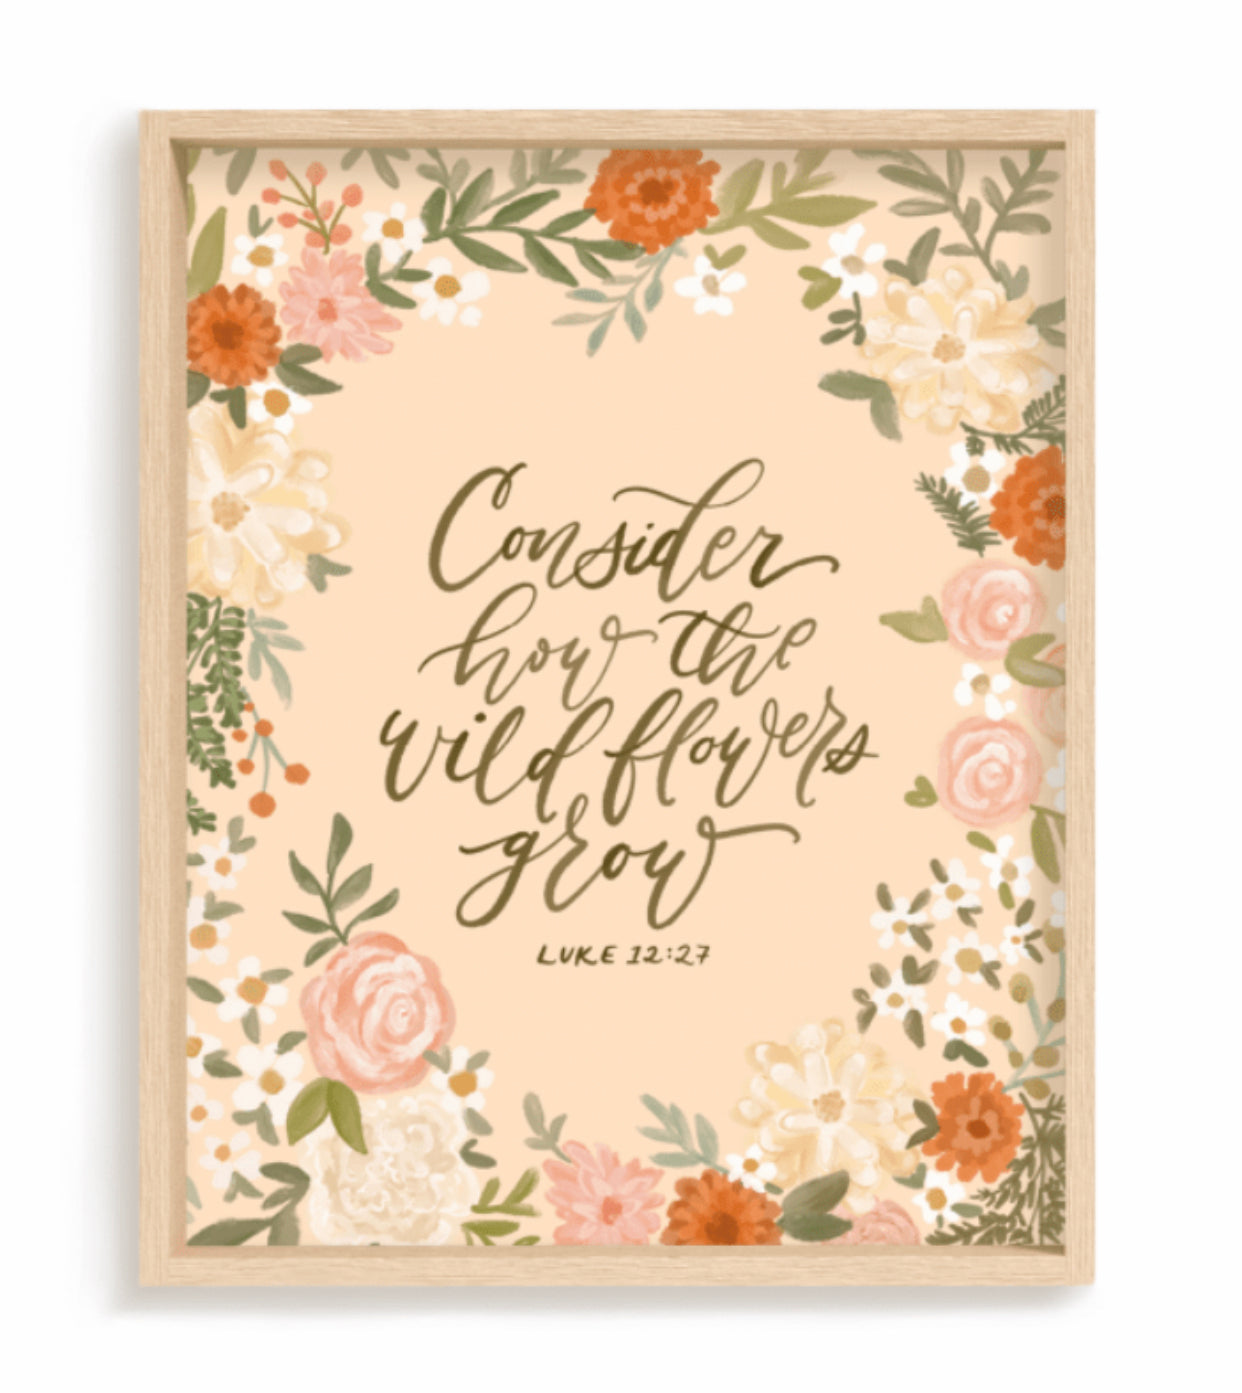 """Consider How the Wildflowers Grow (Luke 12:27)"" (PRINT) 5x7"